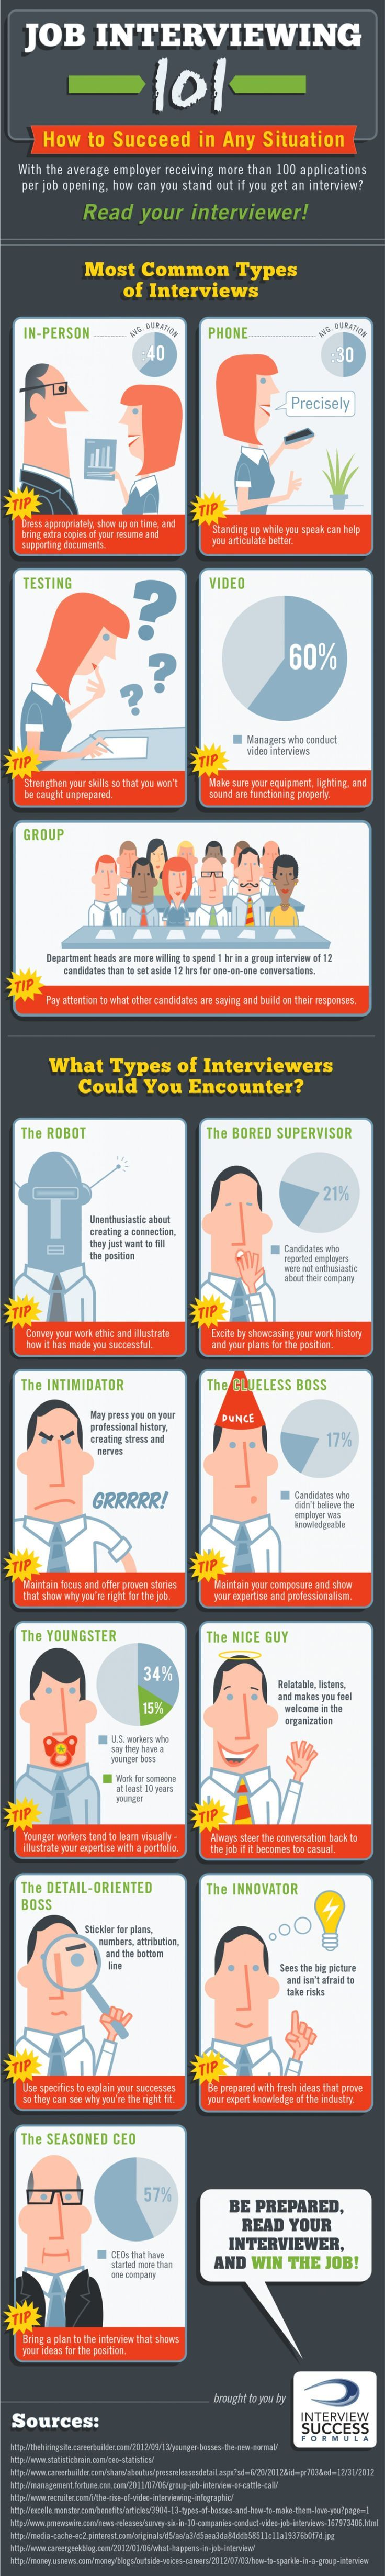 Job #Interviewing 101: How to Succeed in Any Situation #Infographic